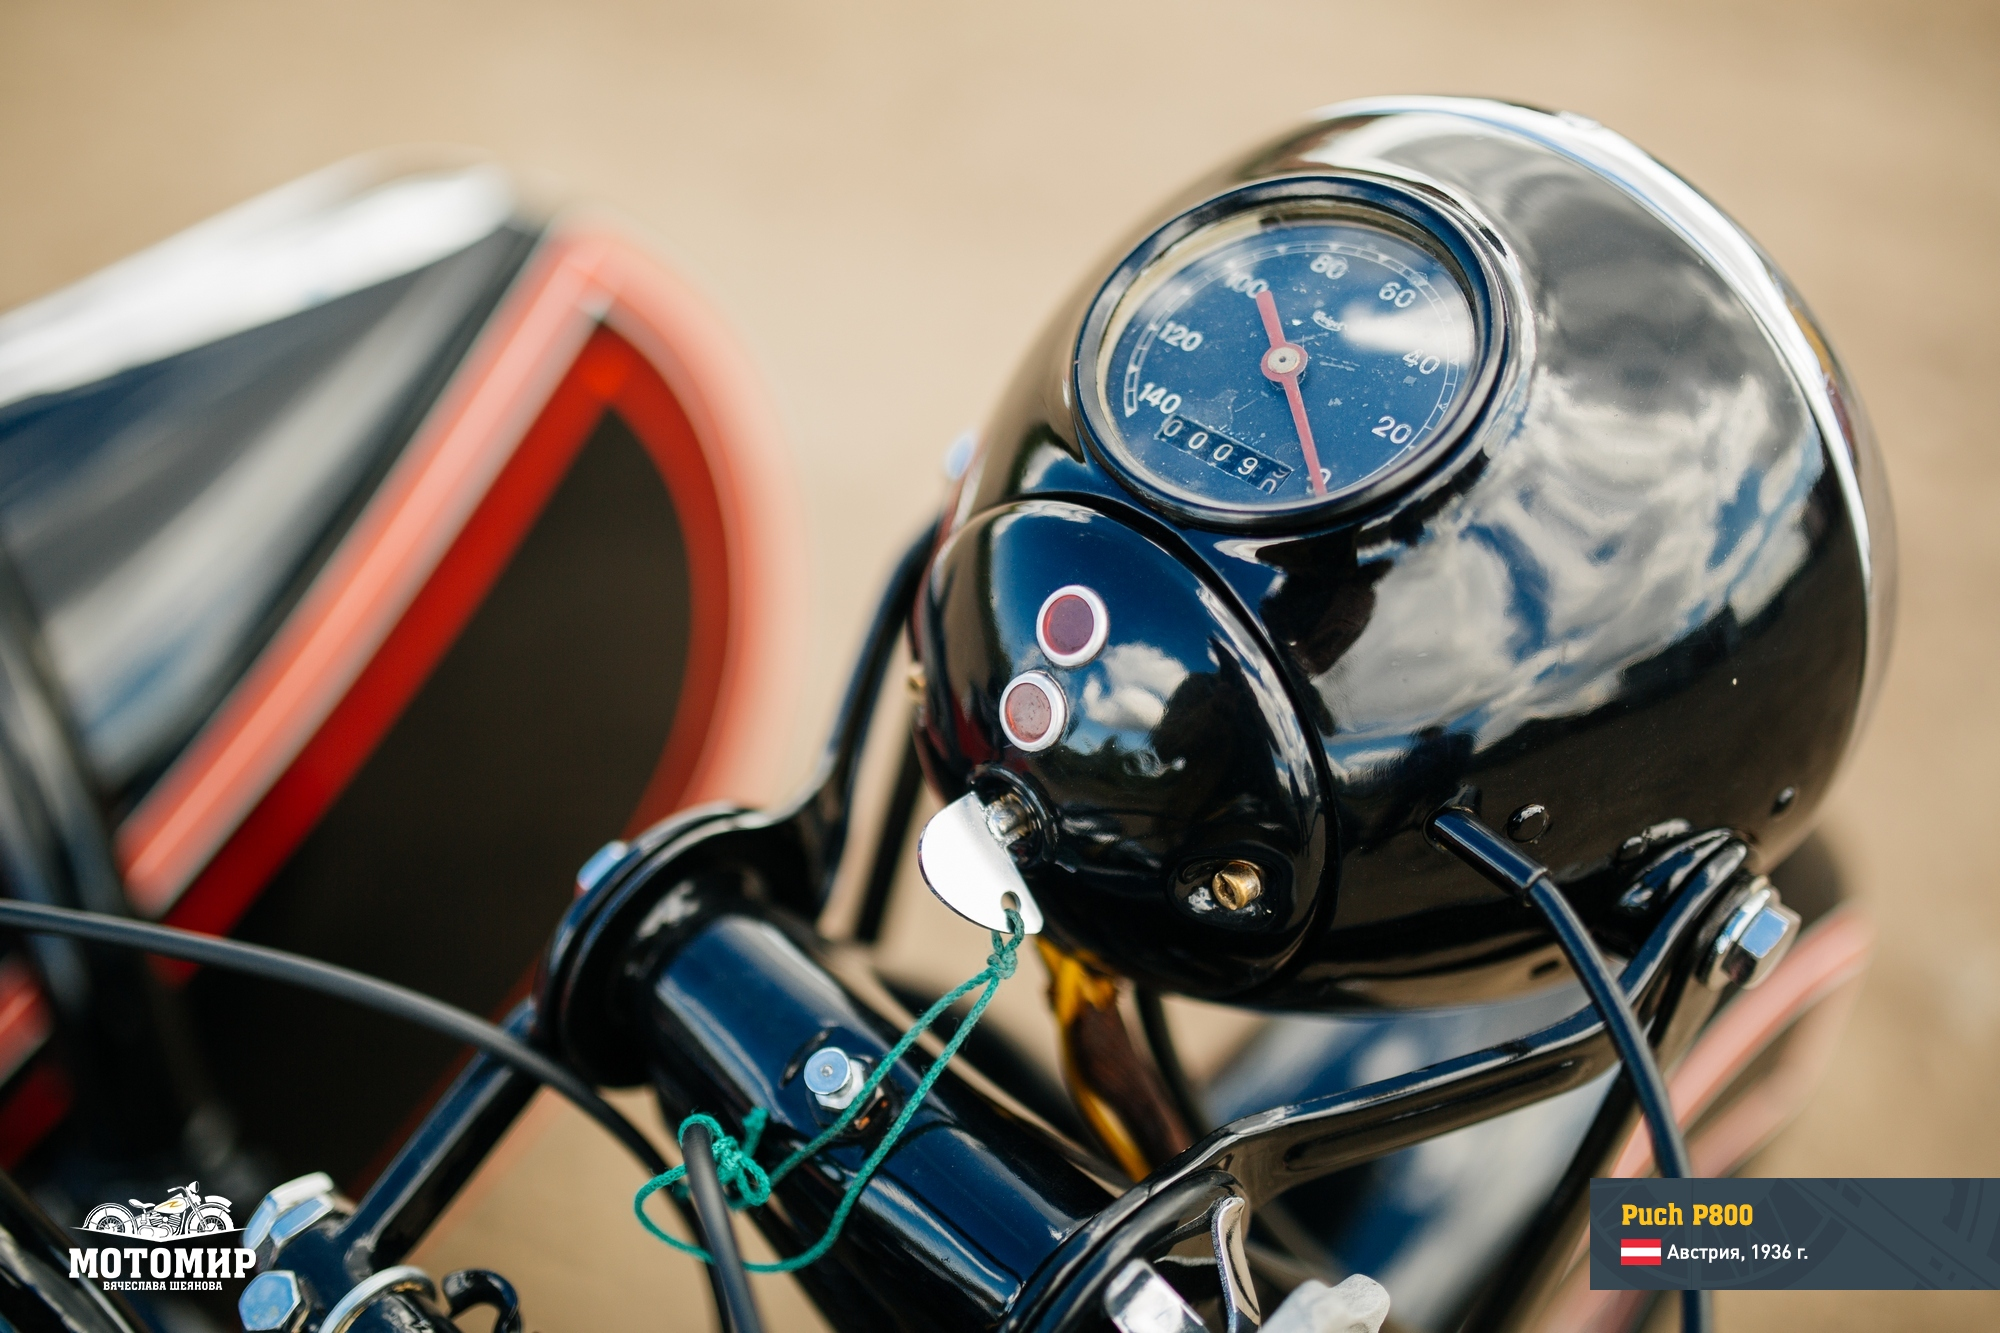 puch-p800-201510-web-29